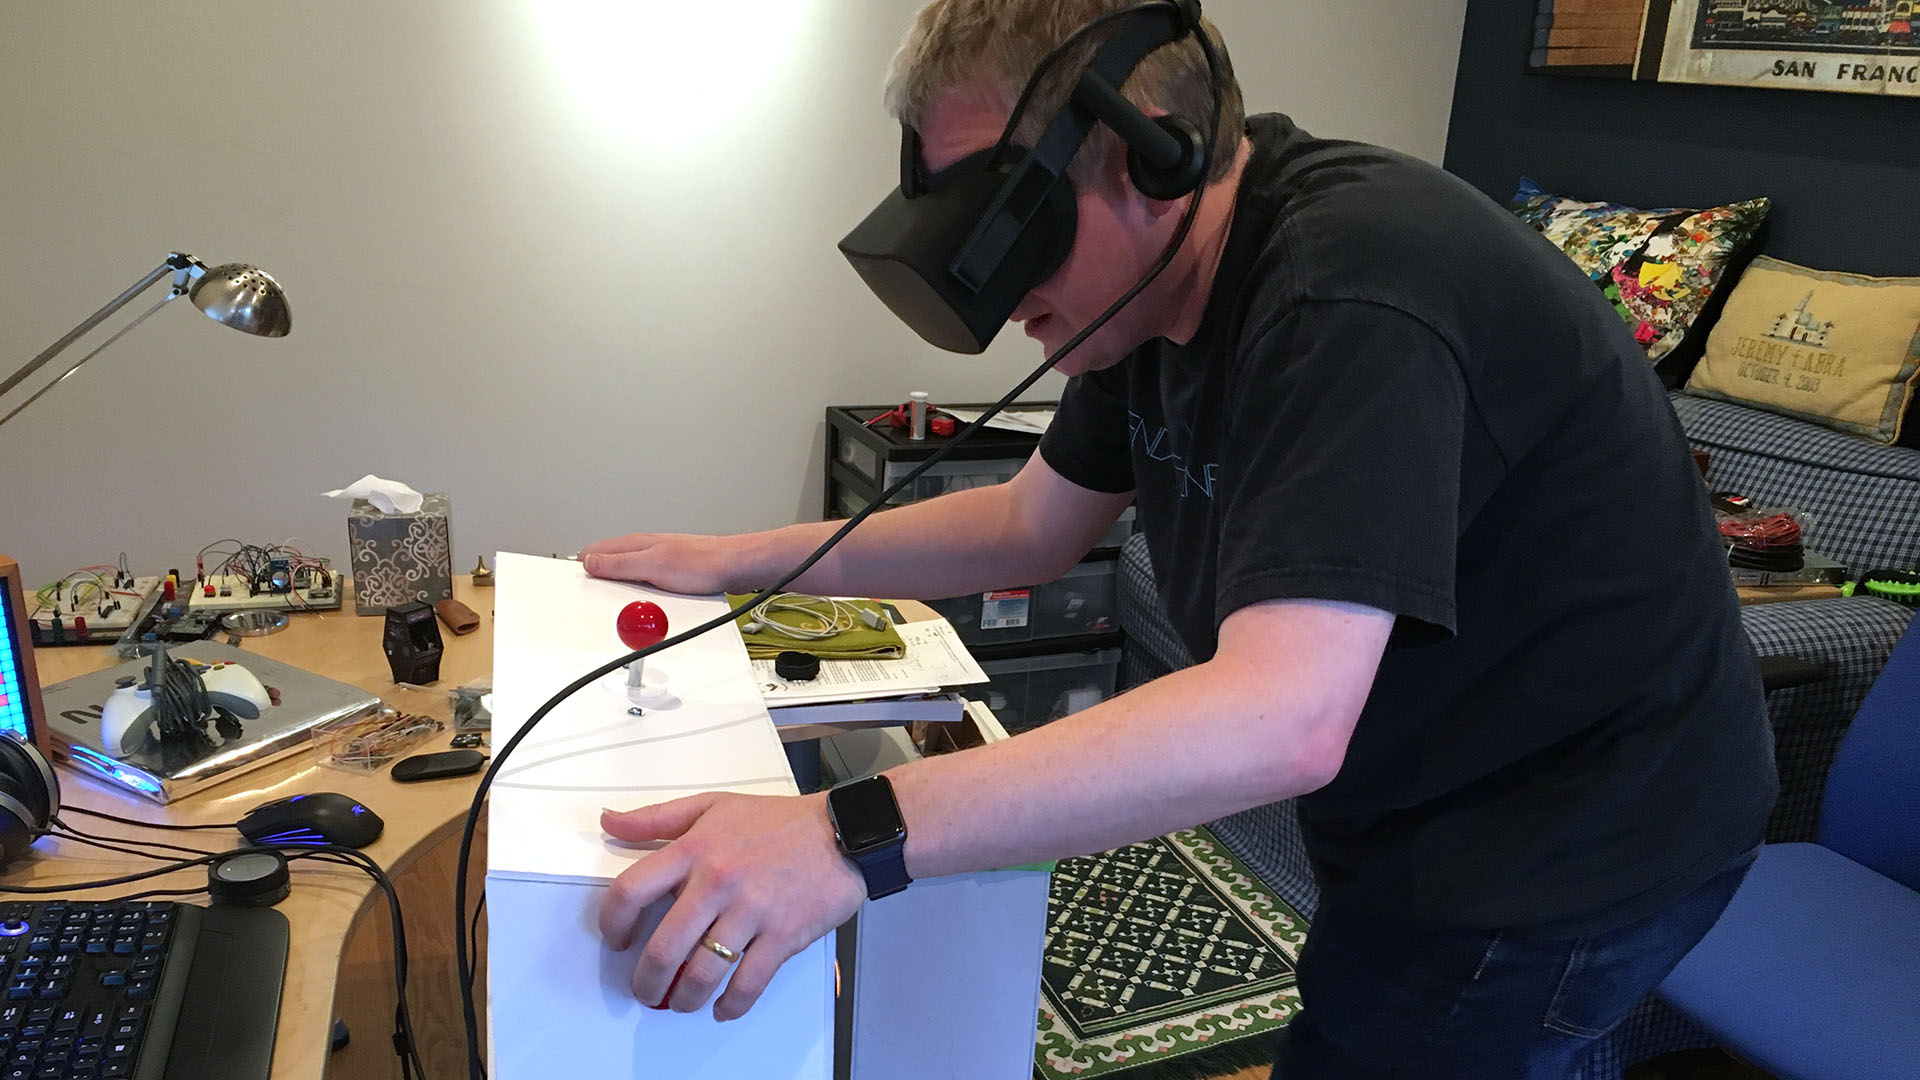 How to Build the PinSim Virtual Reality Pinball Machine - Tested